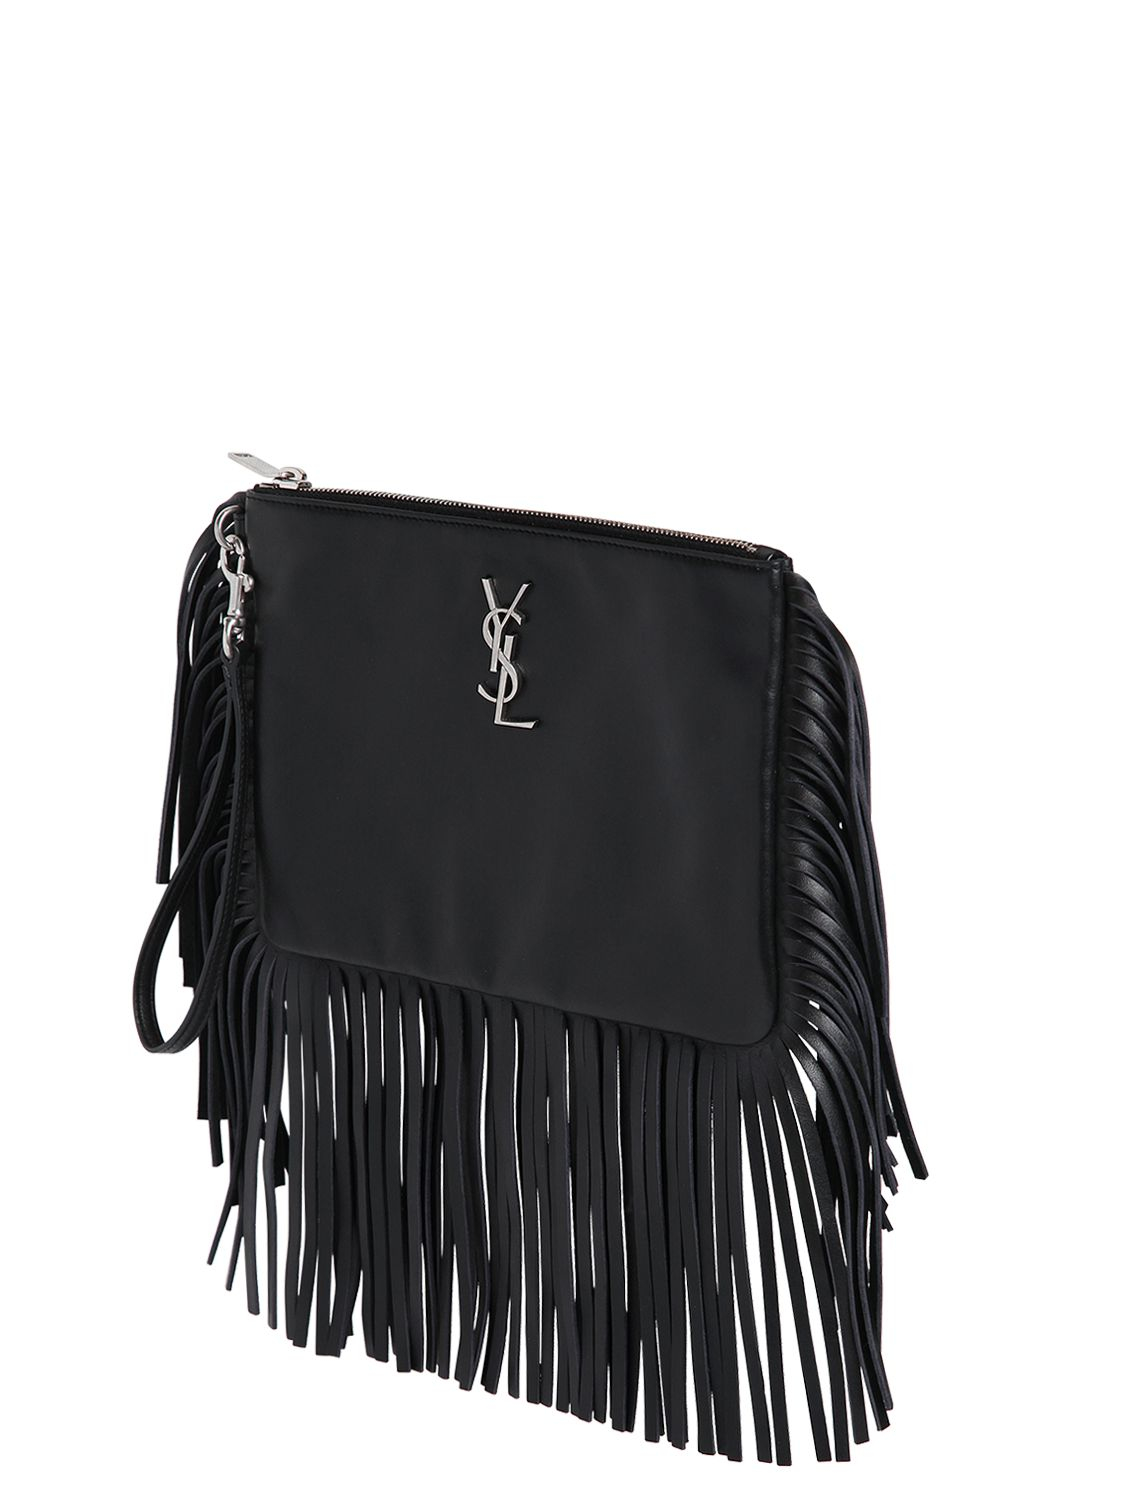 dc64274f24 Lyst - Saint Laurent Monogram Fringed Leather Pouch in Black